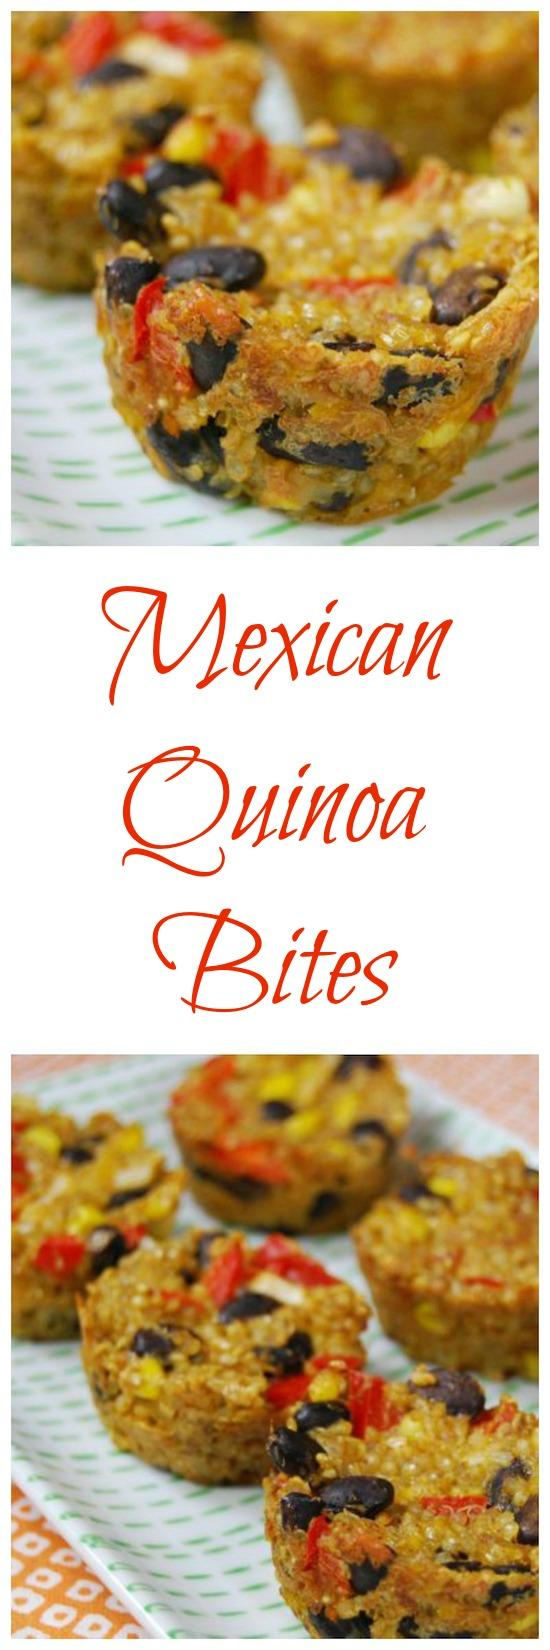 These Mexican Quinoa Bites make a great appetizer and can also be eaten as a main meal. They're vegetarian,  packed with protein and fiber and taste great with a variety of dipping sauces!